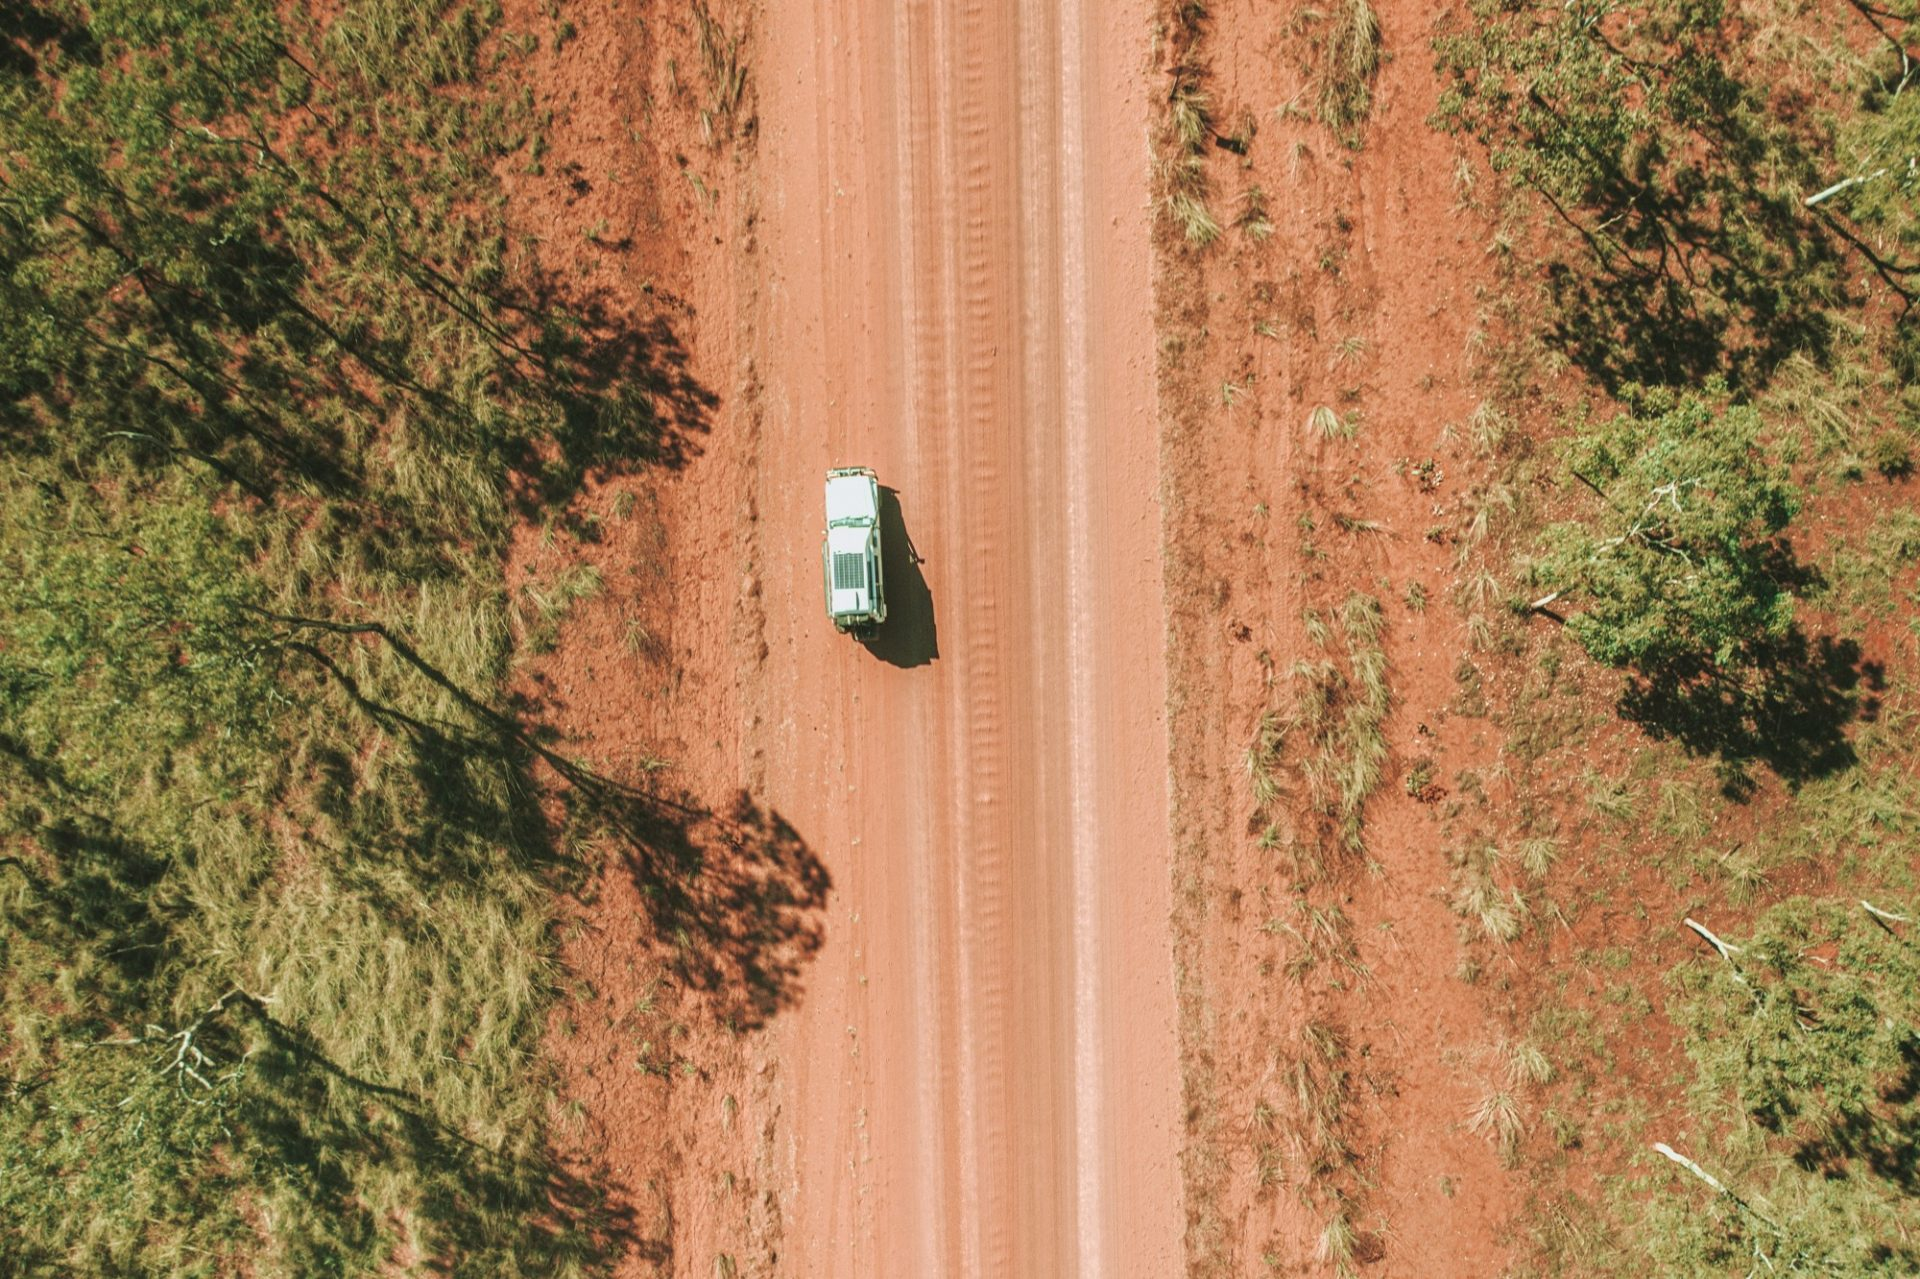 Driving through the Gibb River Road